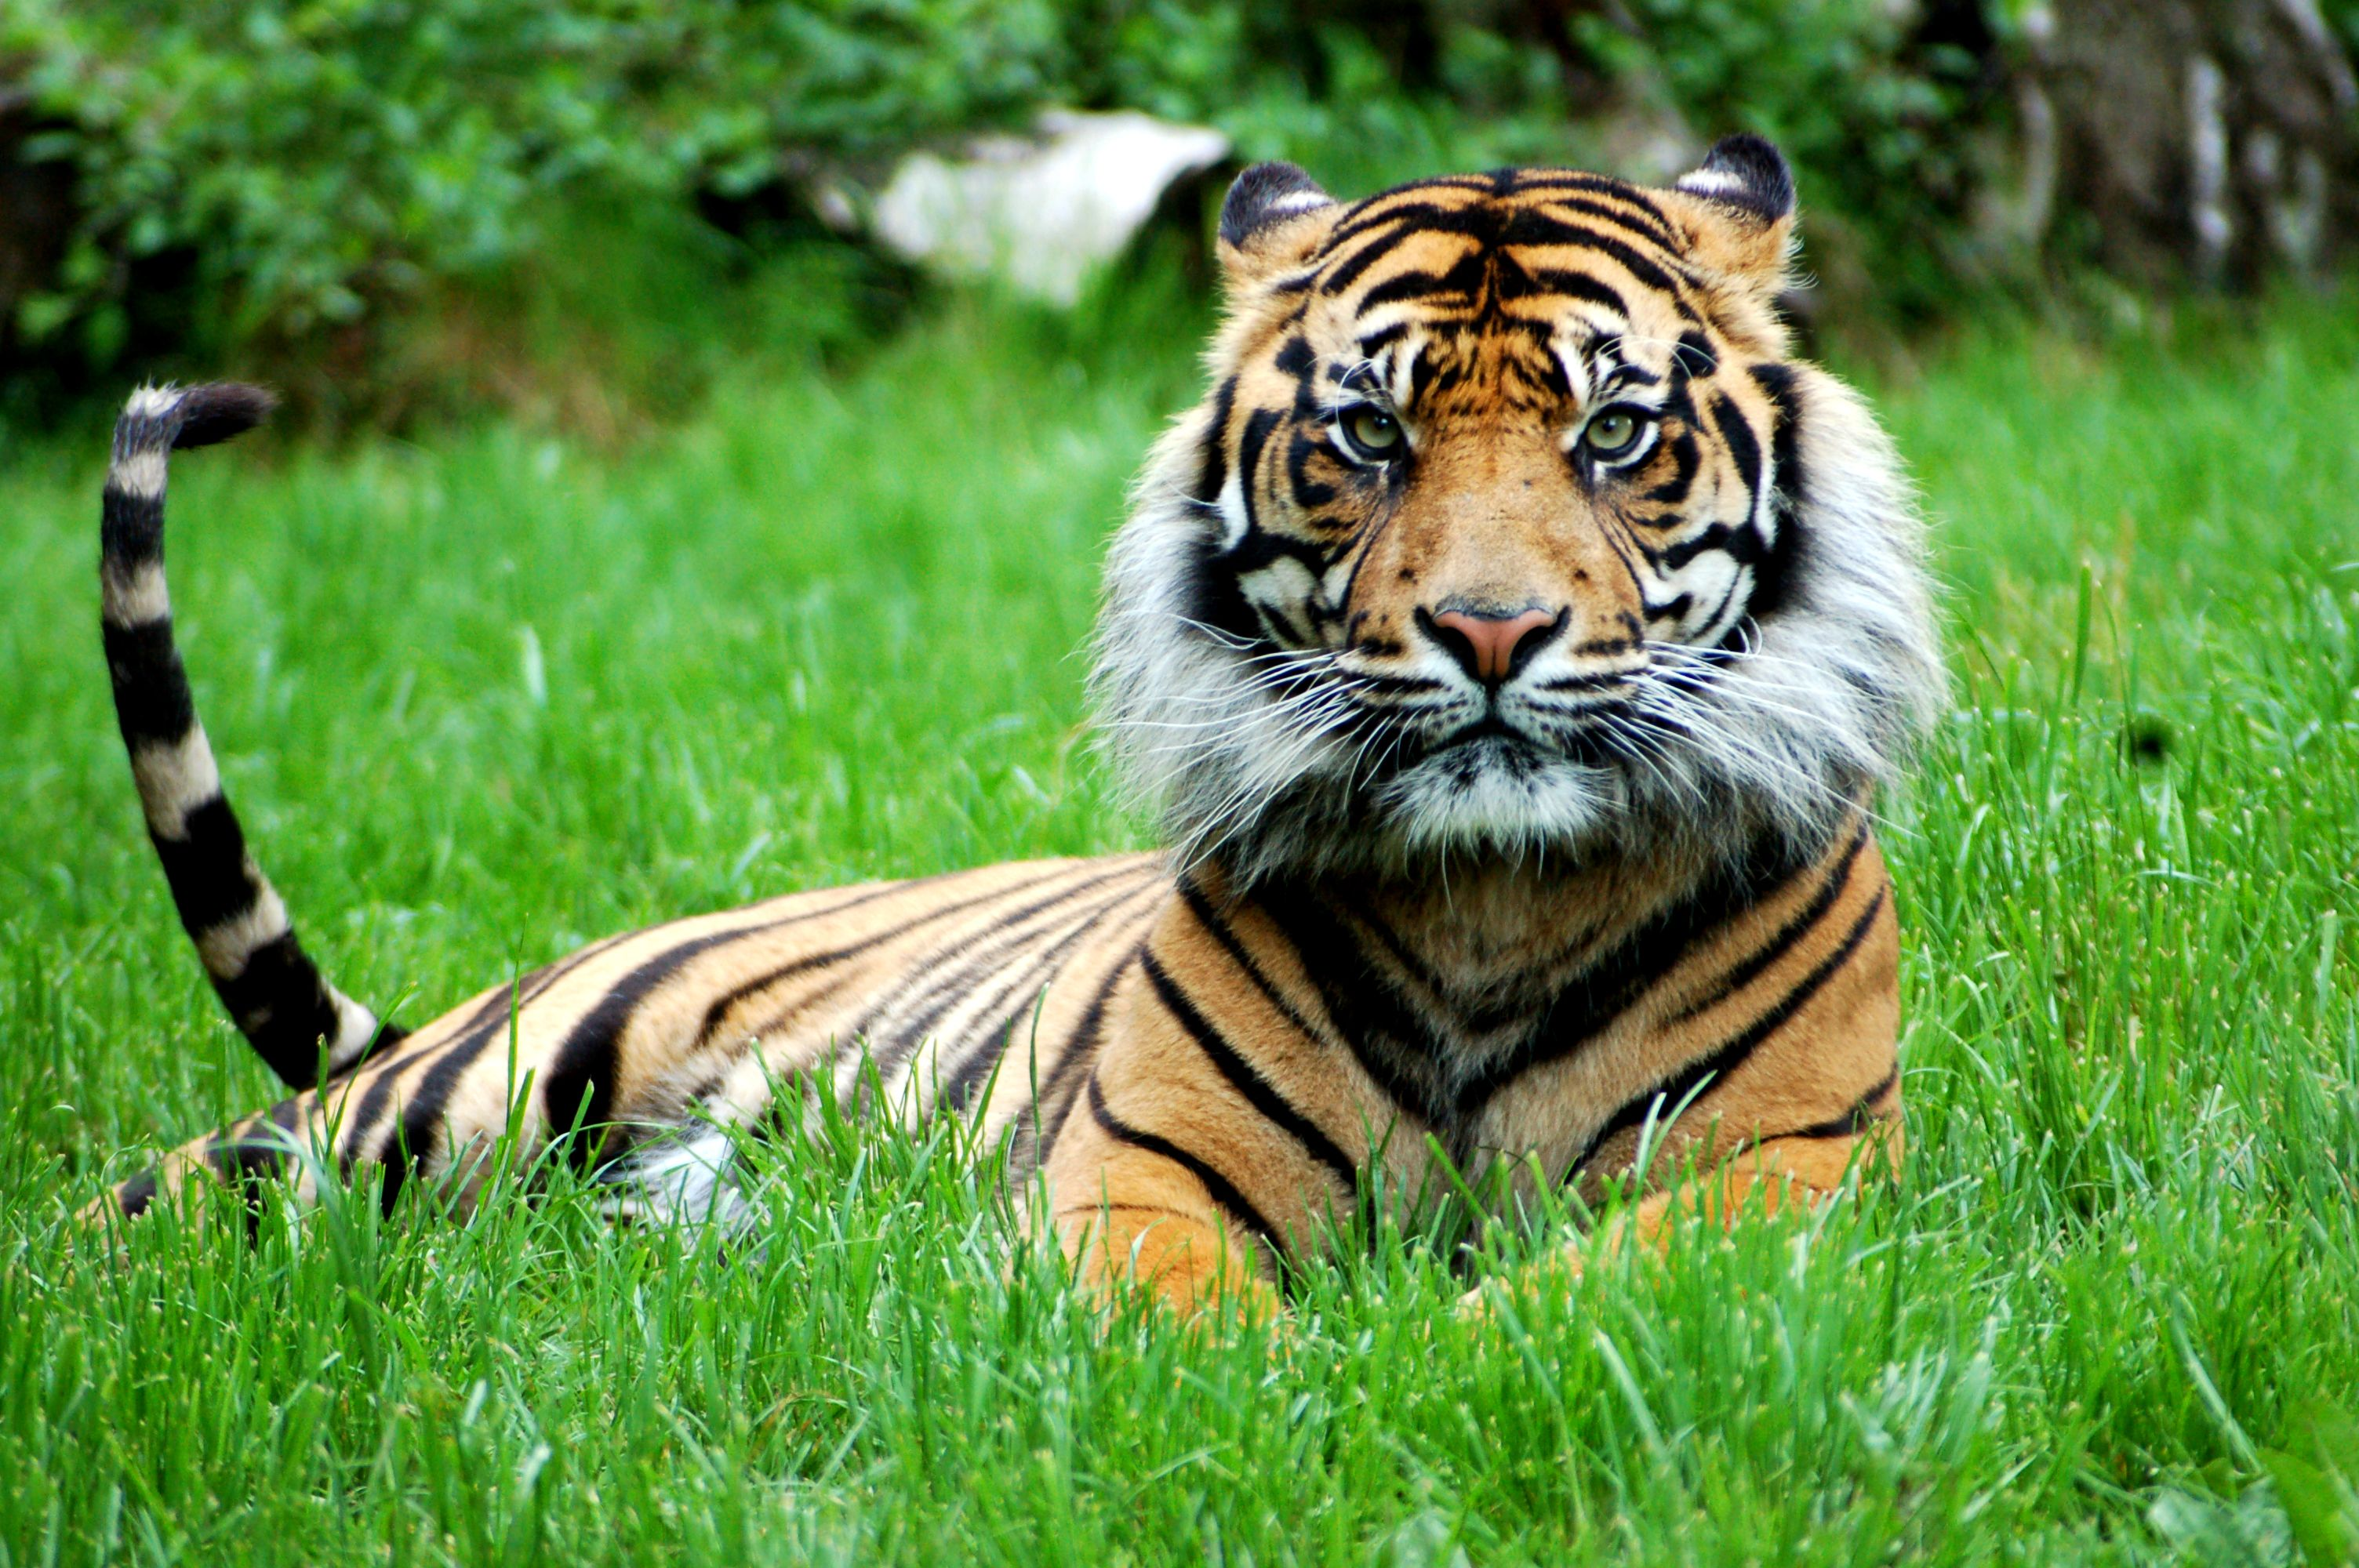 Sumatran tigers have the longest whiskers of all tigers u perfect